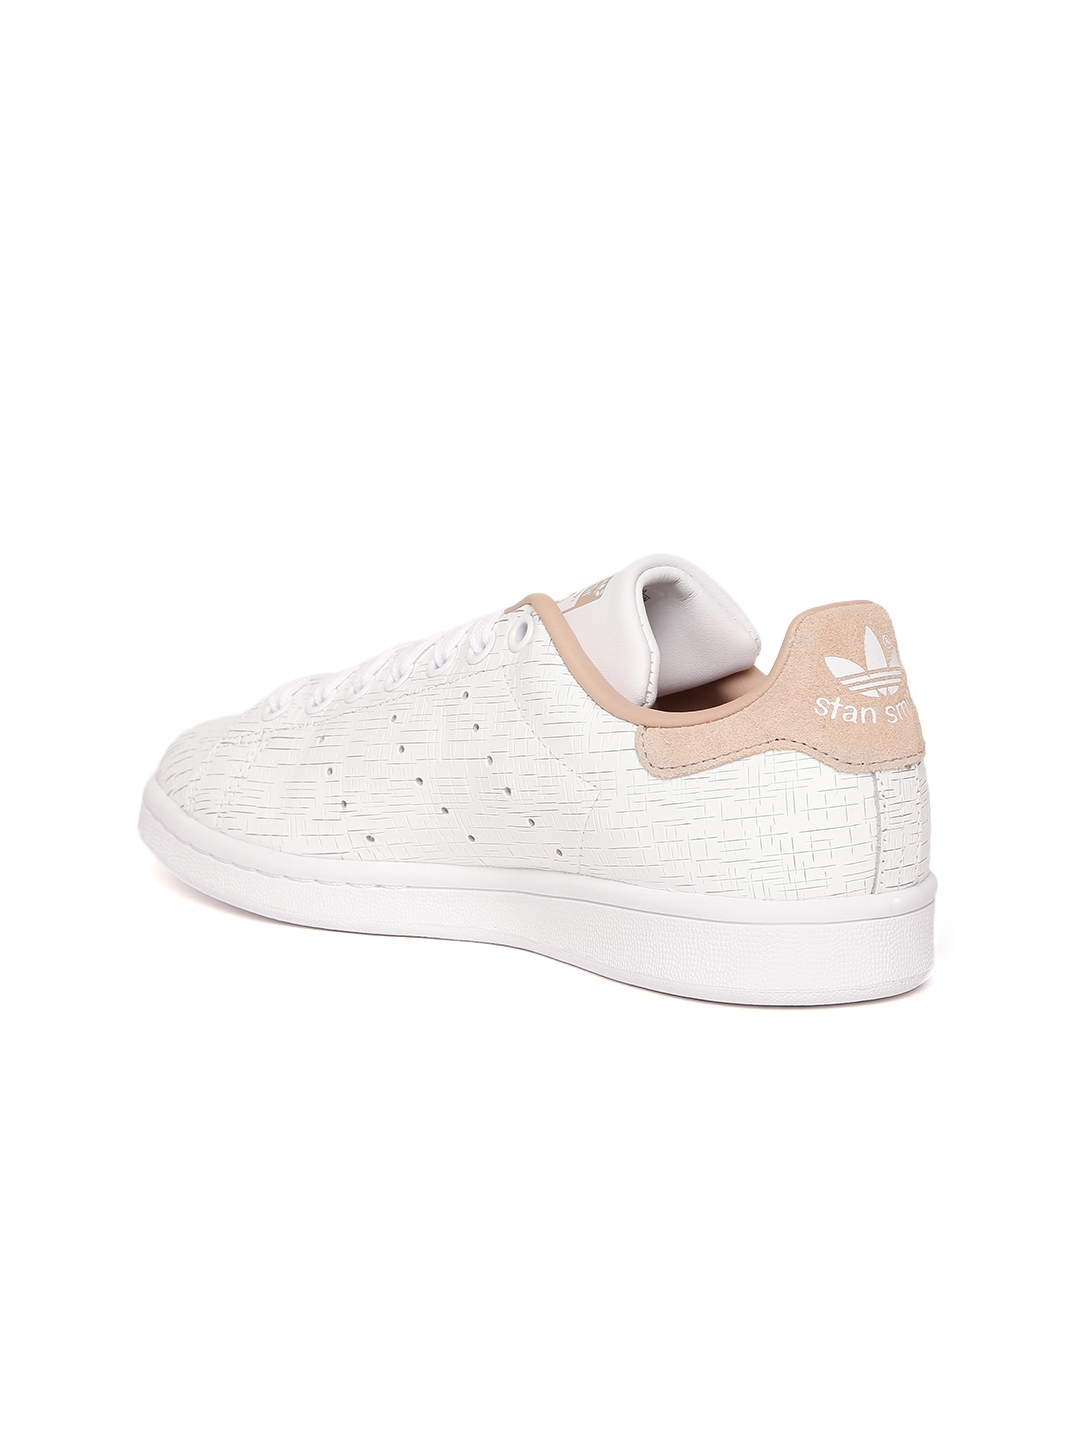 newest a946e 944ef ADIDAS Originals Women White STAN SMITH Textured Leather Sneakers